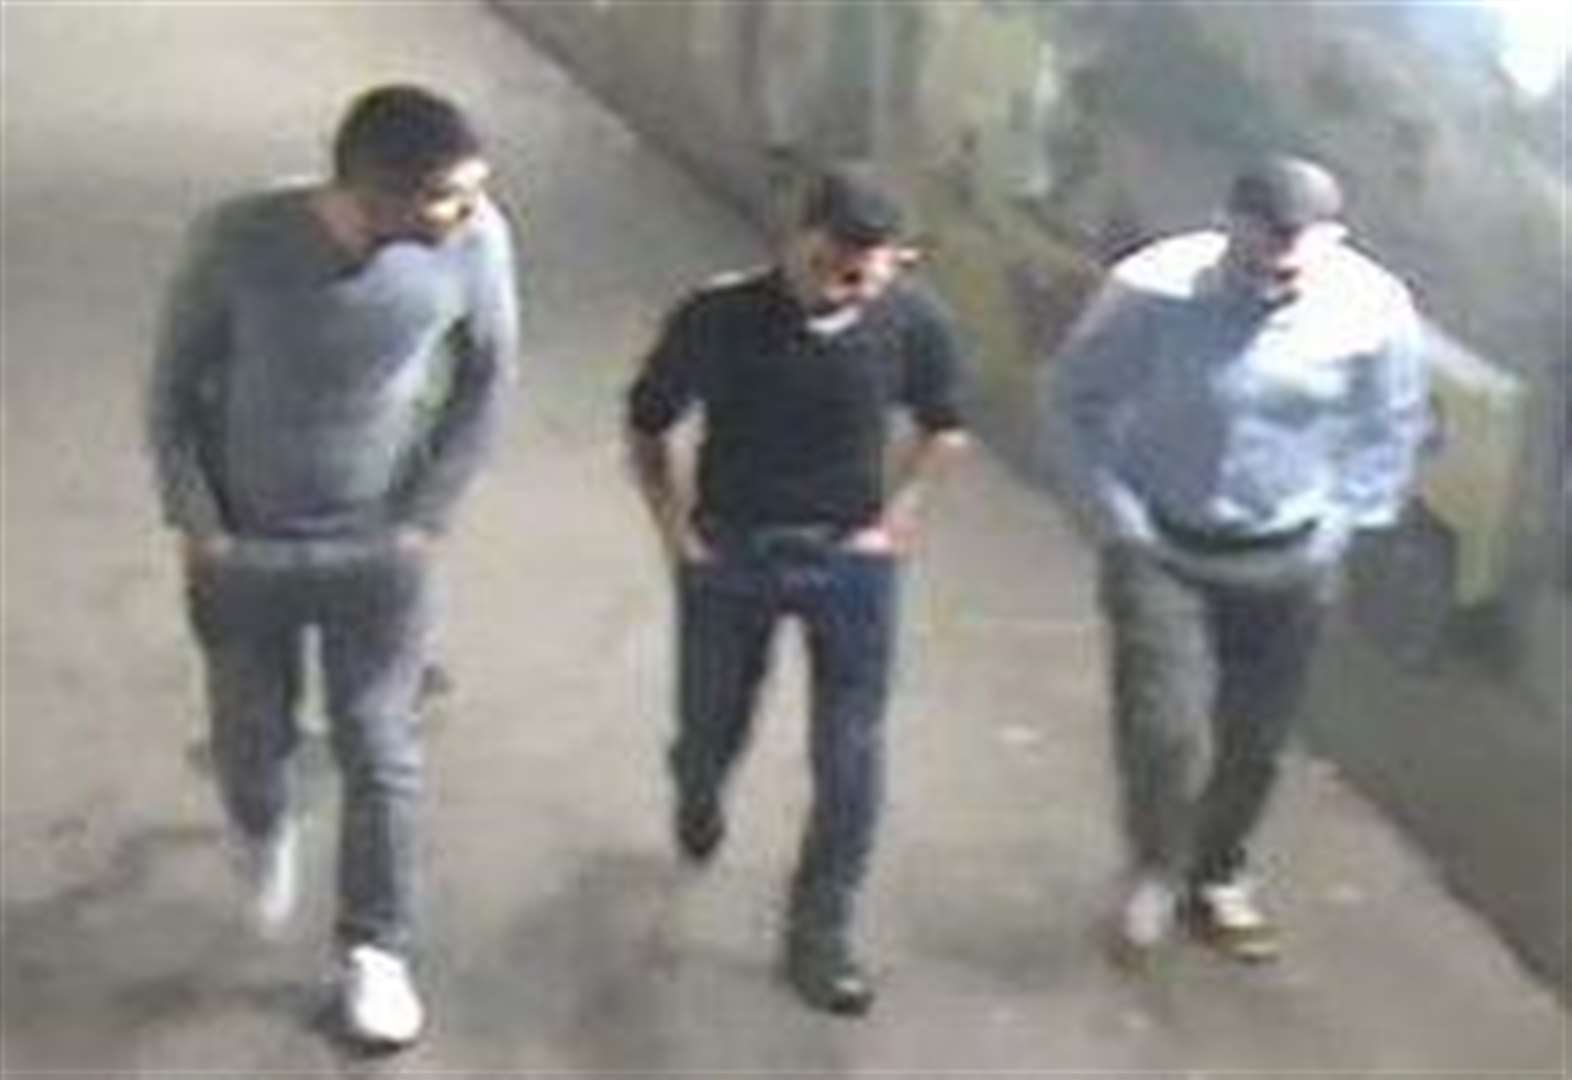 VIDEO: Three jailed for car park rape